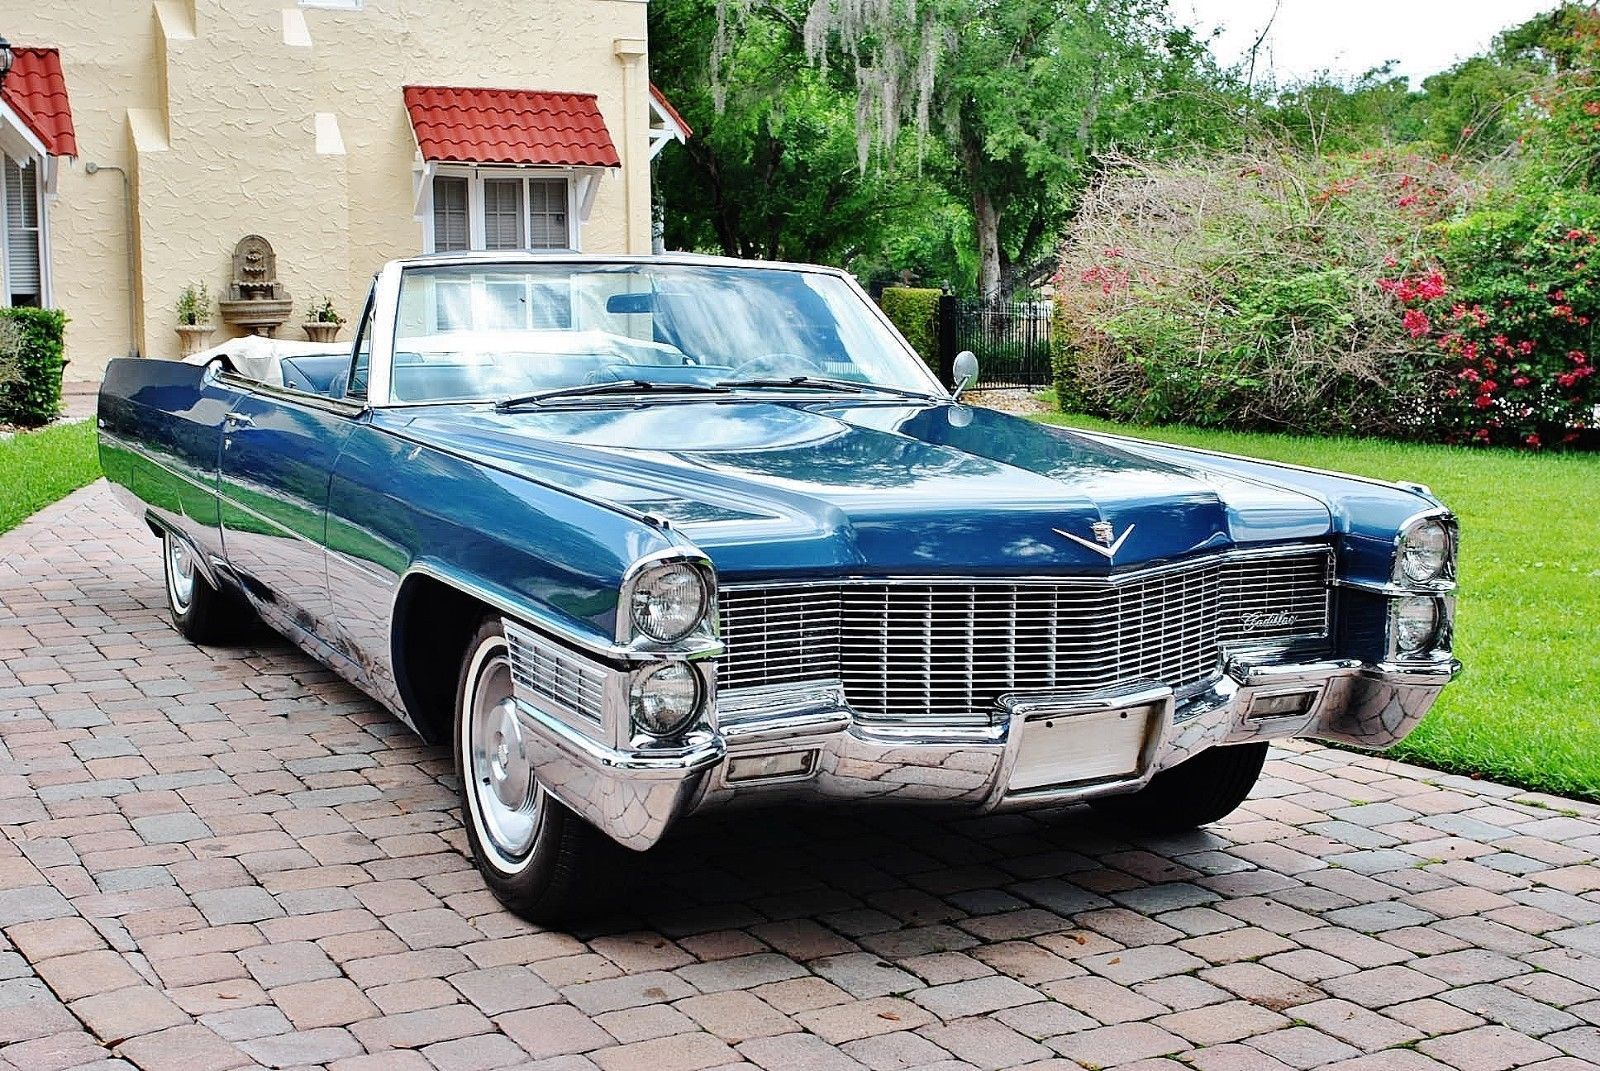 Ebay 1965 Cadillac Deville Convertible Simply 1978 Paint Colors Stunning Imply Classiccars Cars